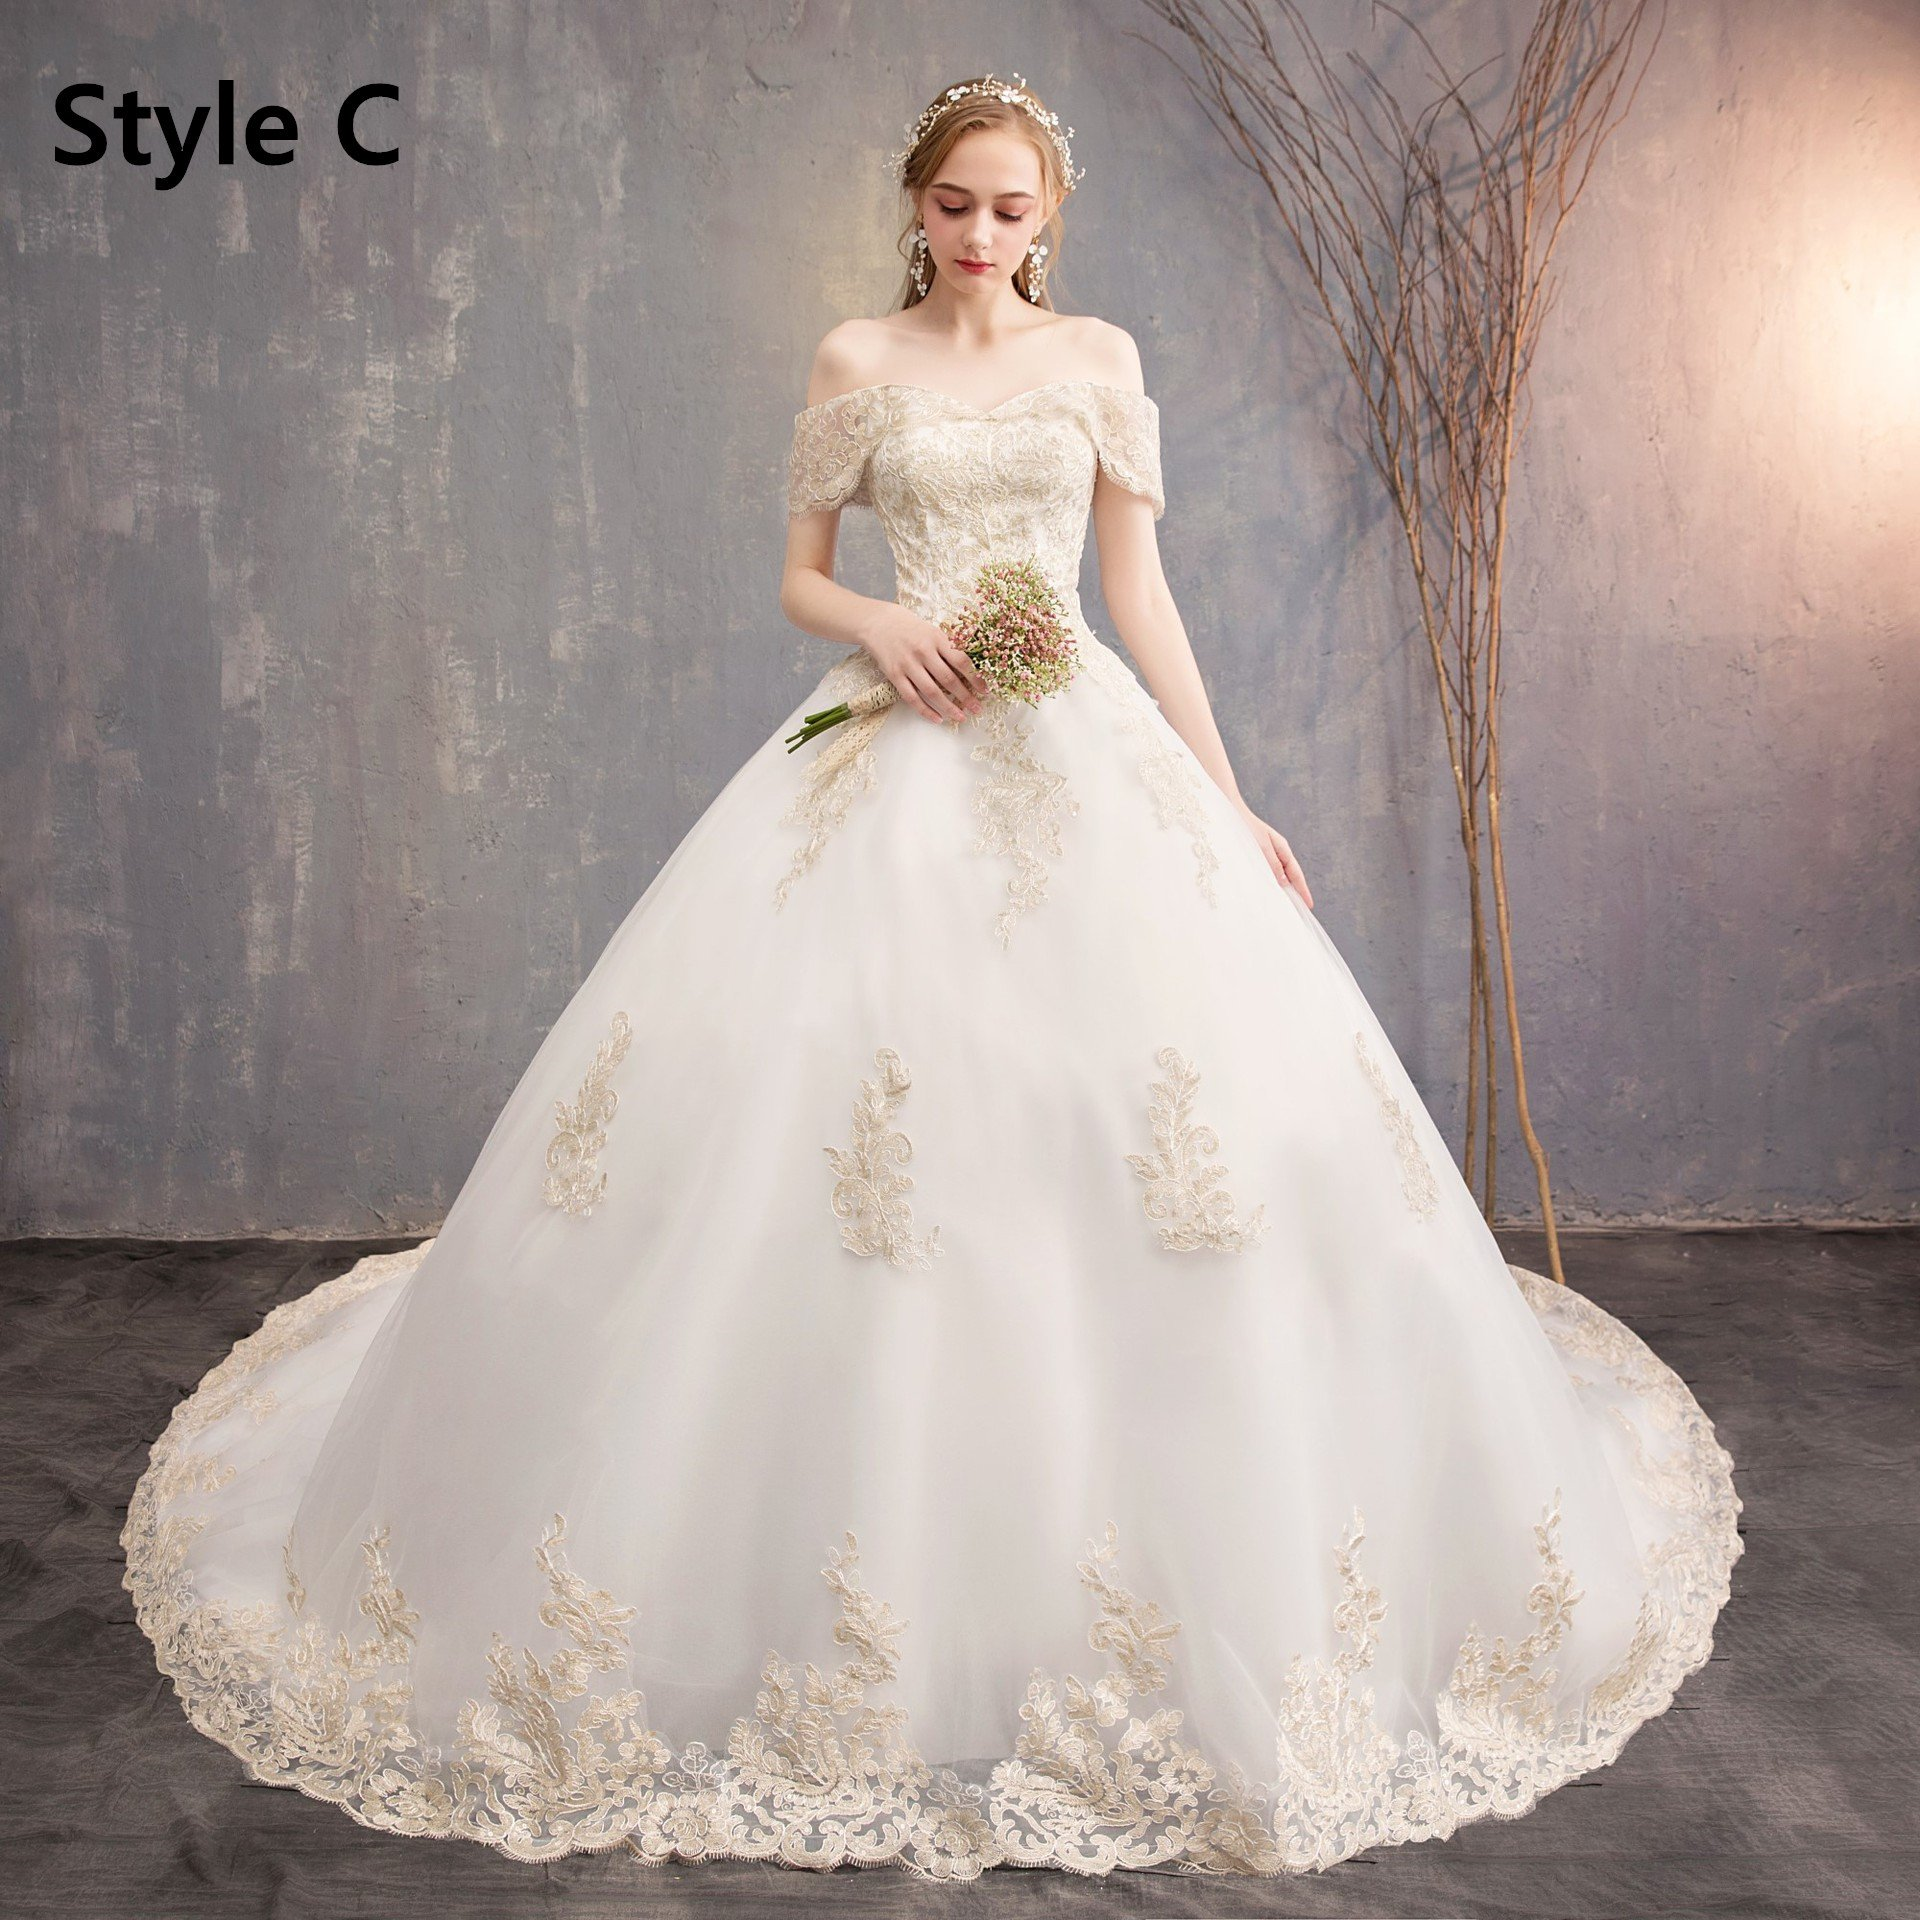 Lace Wedding Dresses 2020 New 715 Womens Floral Wrap Dress High Low Dresses Floor Length Floral Dress Hippie Wedding Dress Red Wedding Gown Long Sleeve Sheath Wedding Dress